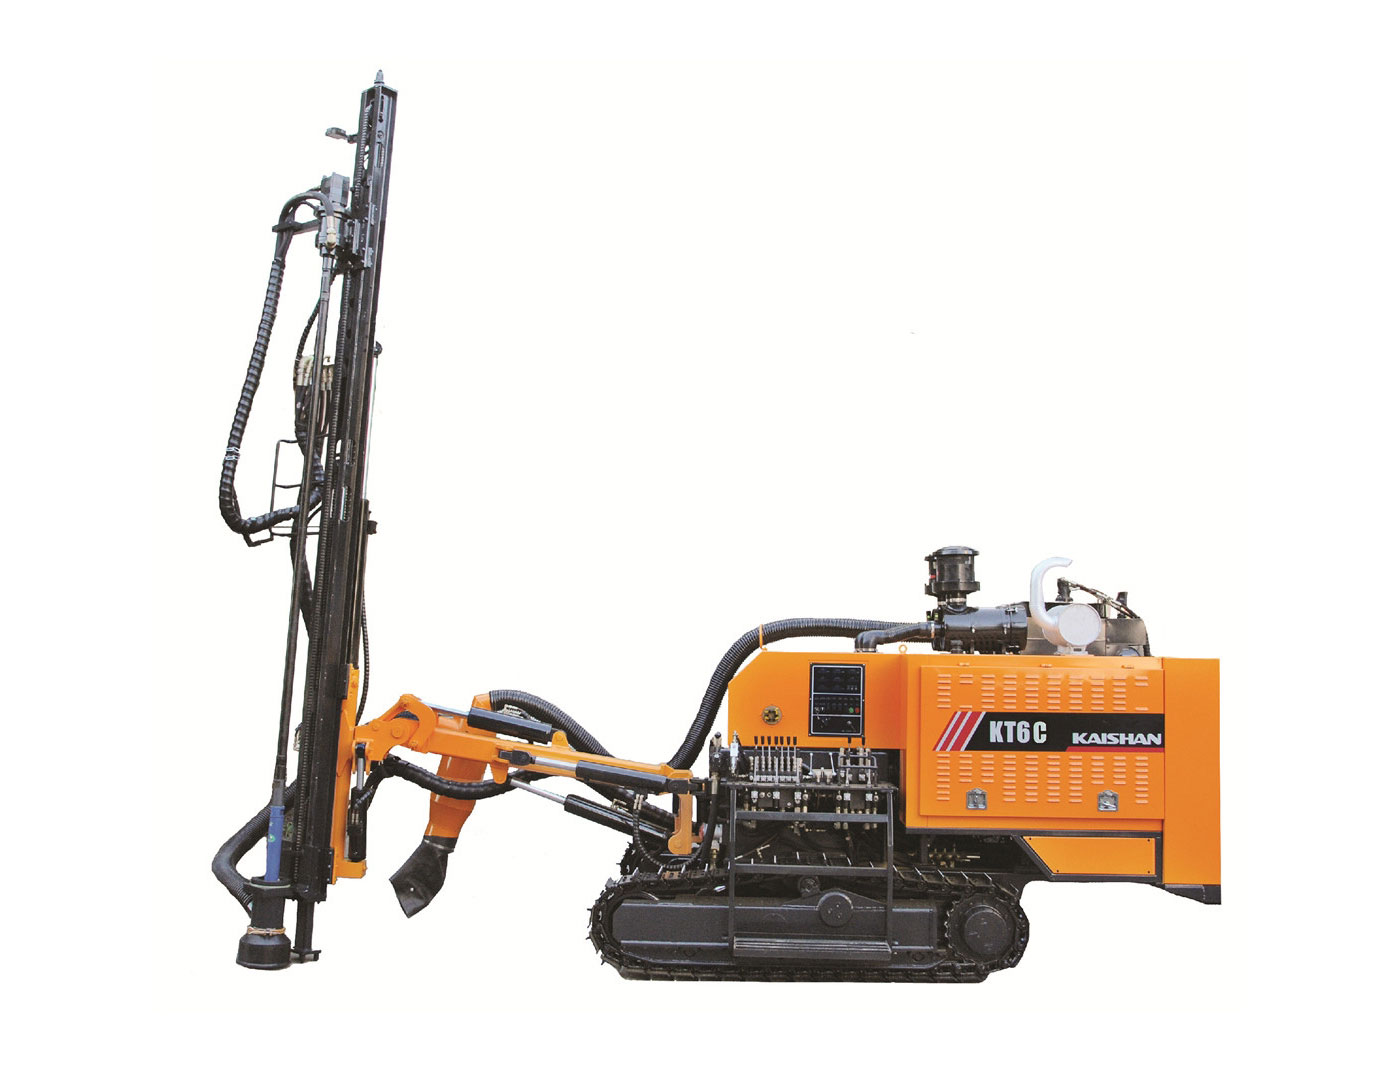 KAISHAN KT6C integrated drilling rig